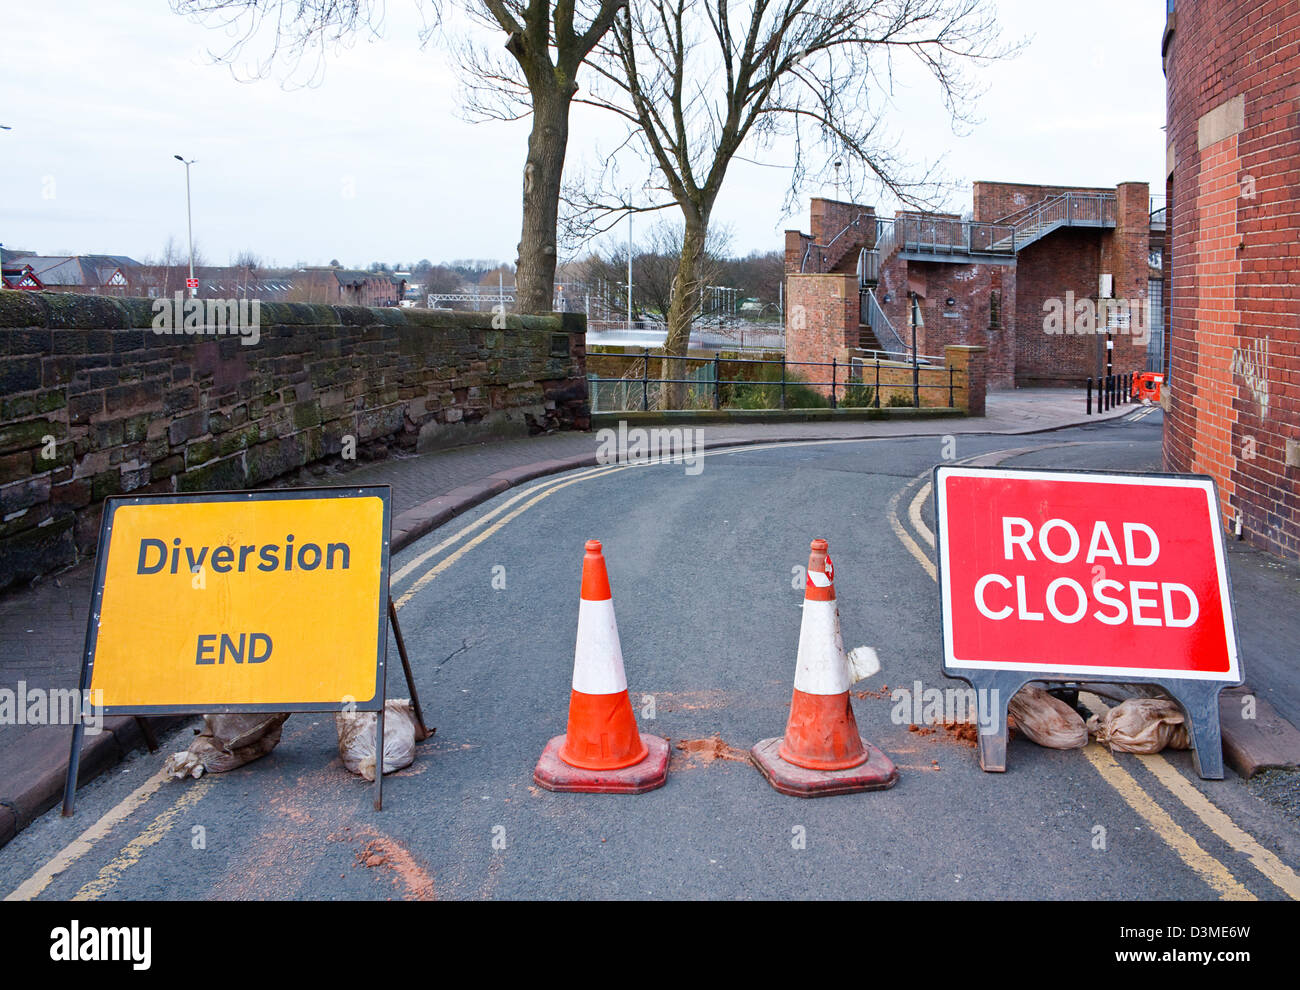 Road closed signs on a small street in the uk to stop cars and keep workmen safe - Stock Image